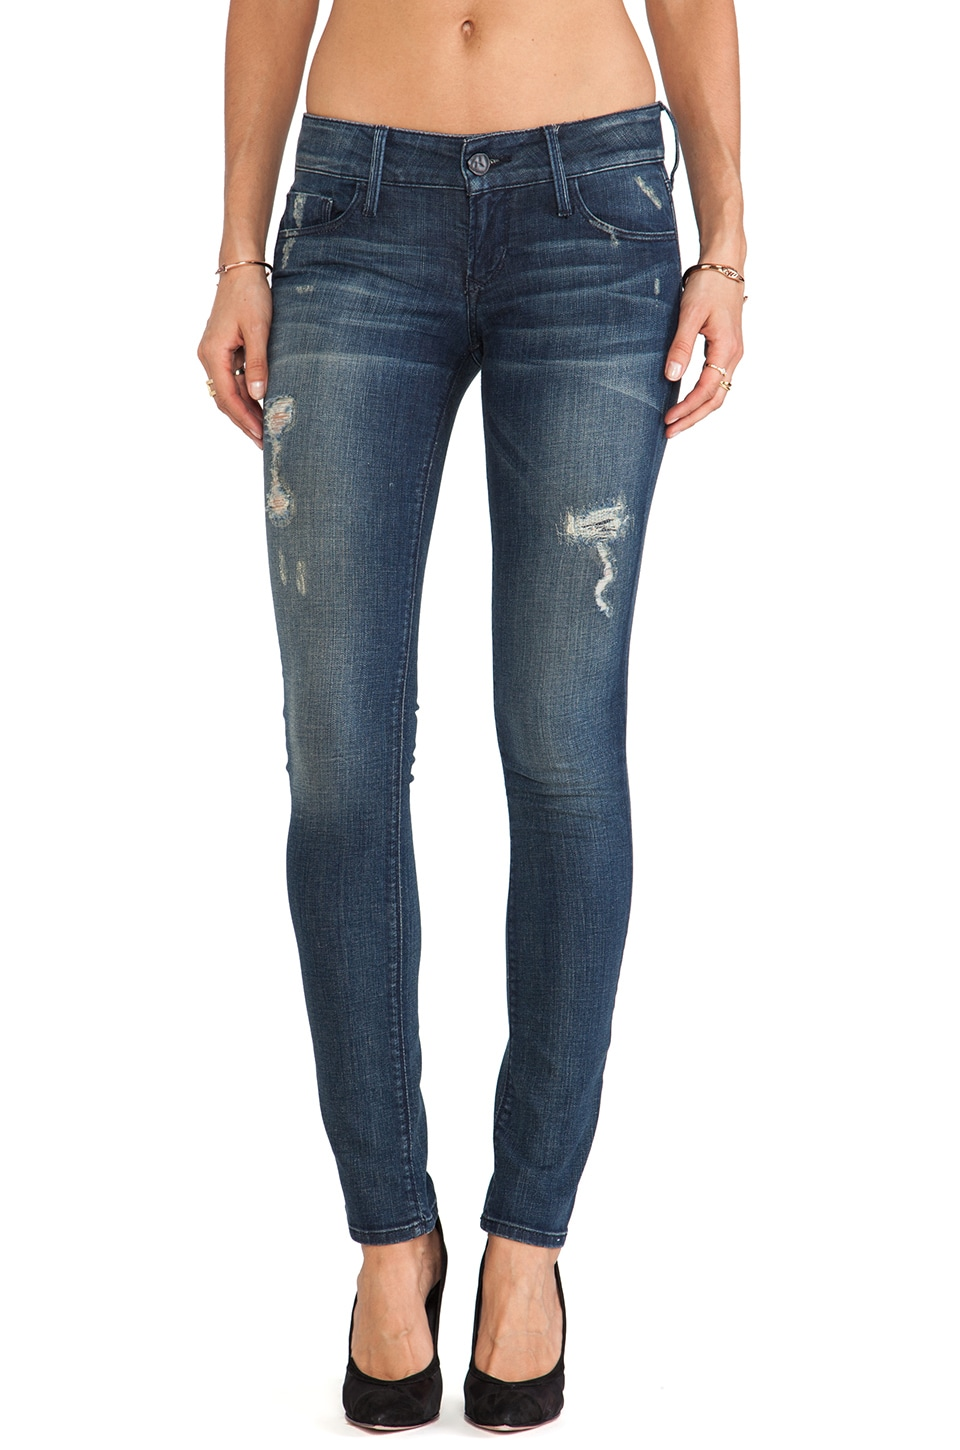 Black Orchid Distressed Skinny in Die Another Day